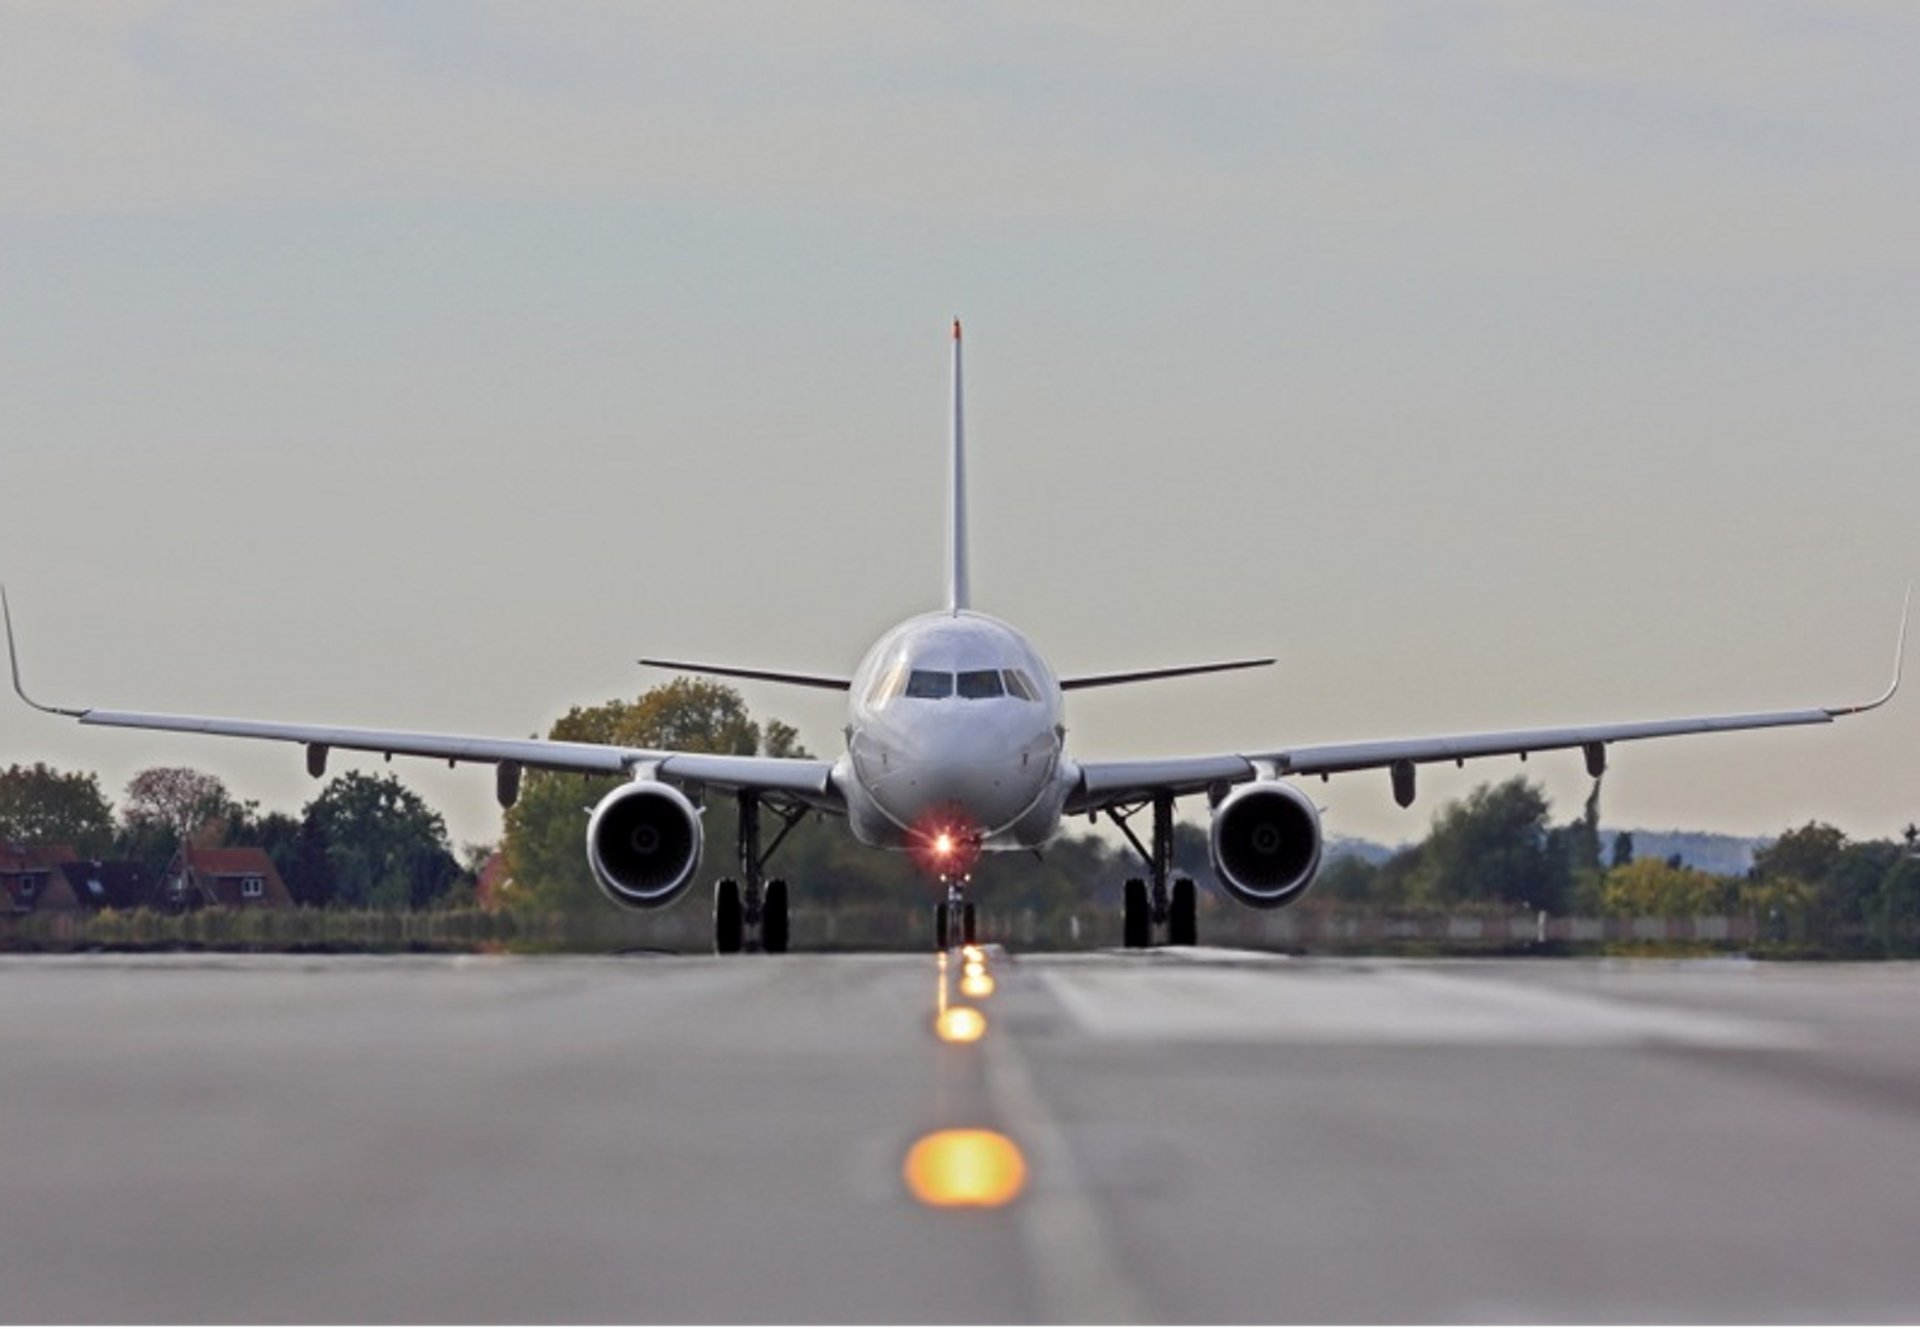 Developed by Airbus and its NAVBLUE subsidiary, the Braking Action Computation Function (BACF) provides real-time data on potentially challenging or dangerous runway conditions created by rain, snow or freezing water, and will be deployed first on A320 Family jetliners